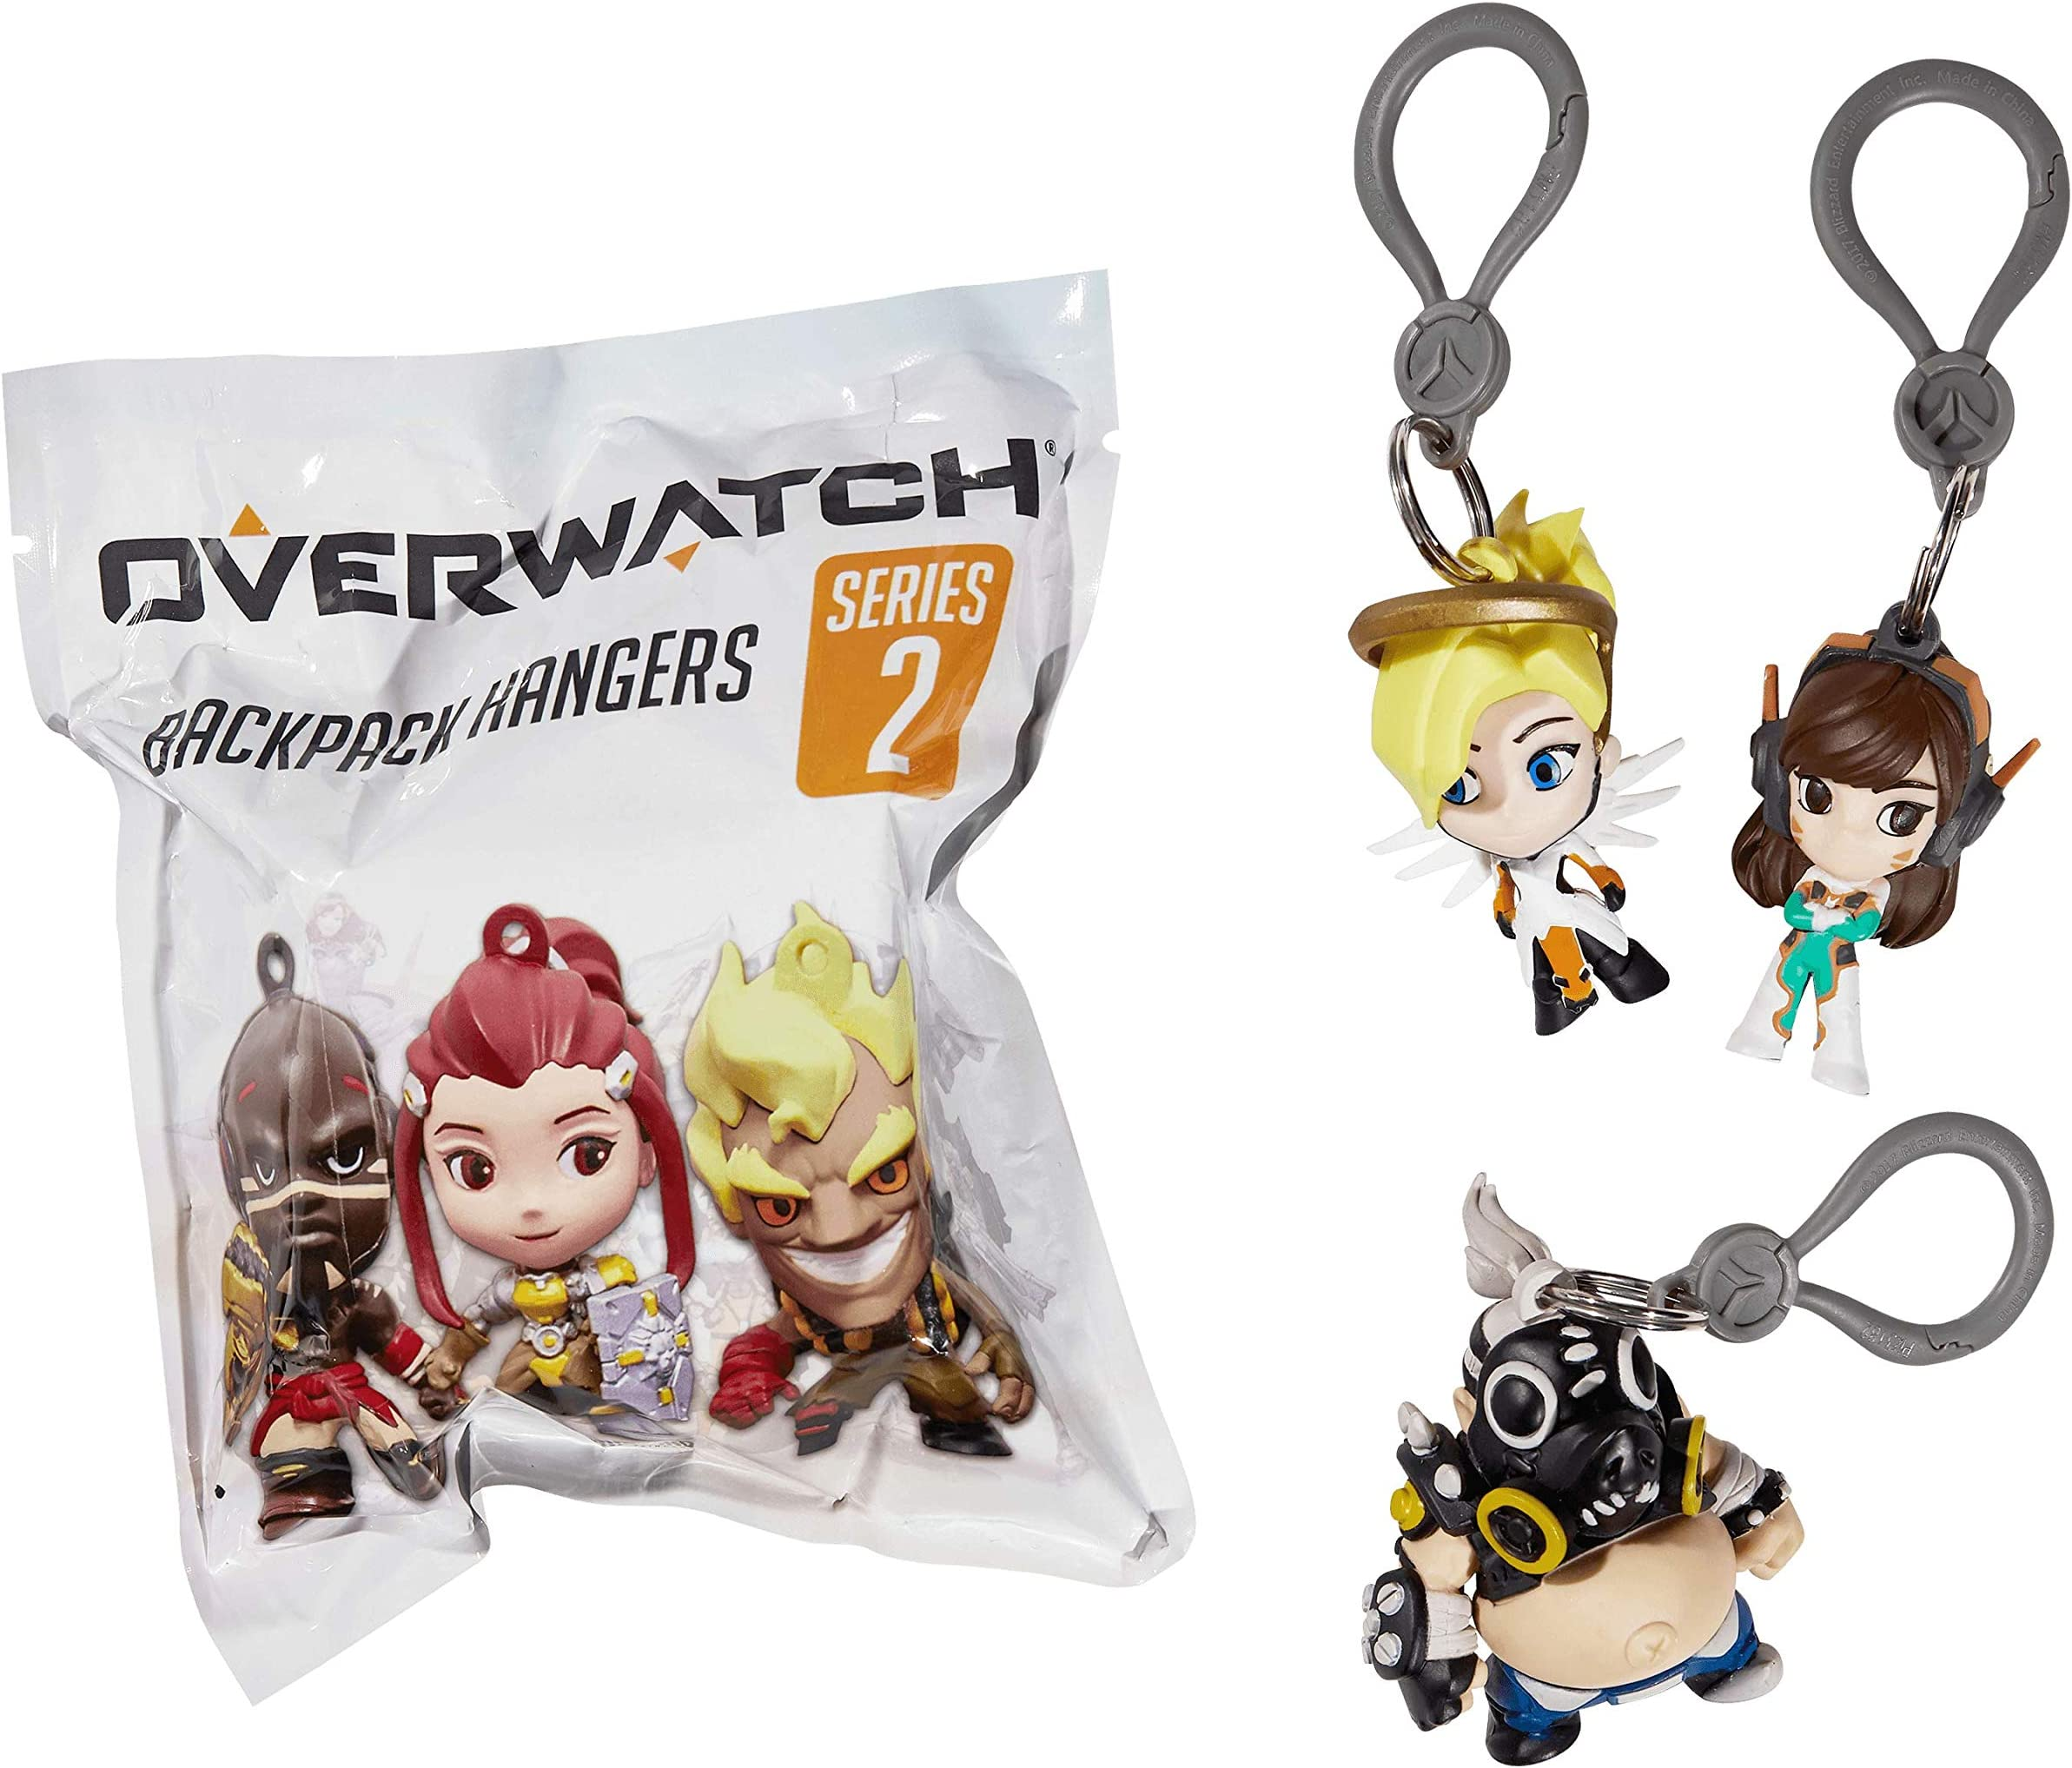 Amazon.com: Back Pack Hangers Series 2 (PS4//xbox_one ...